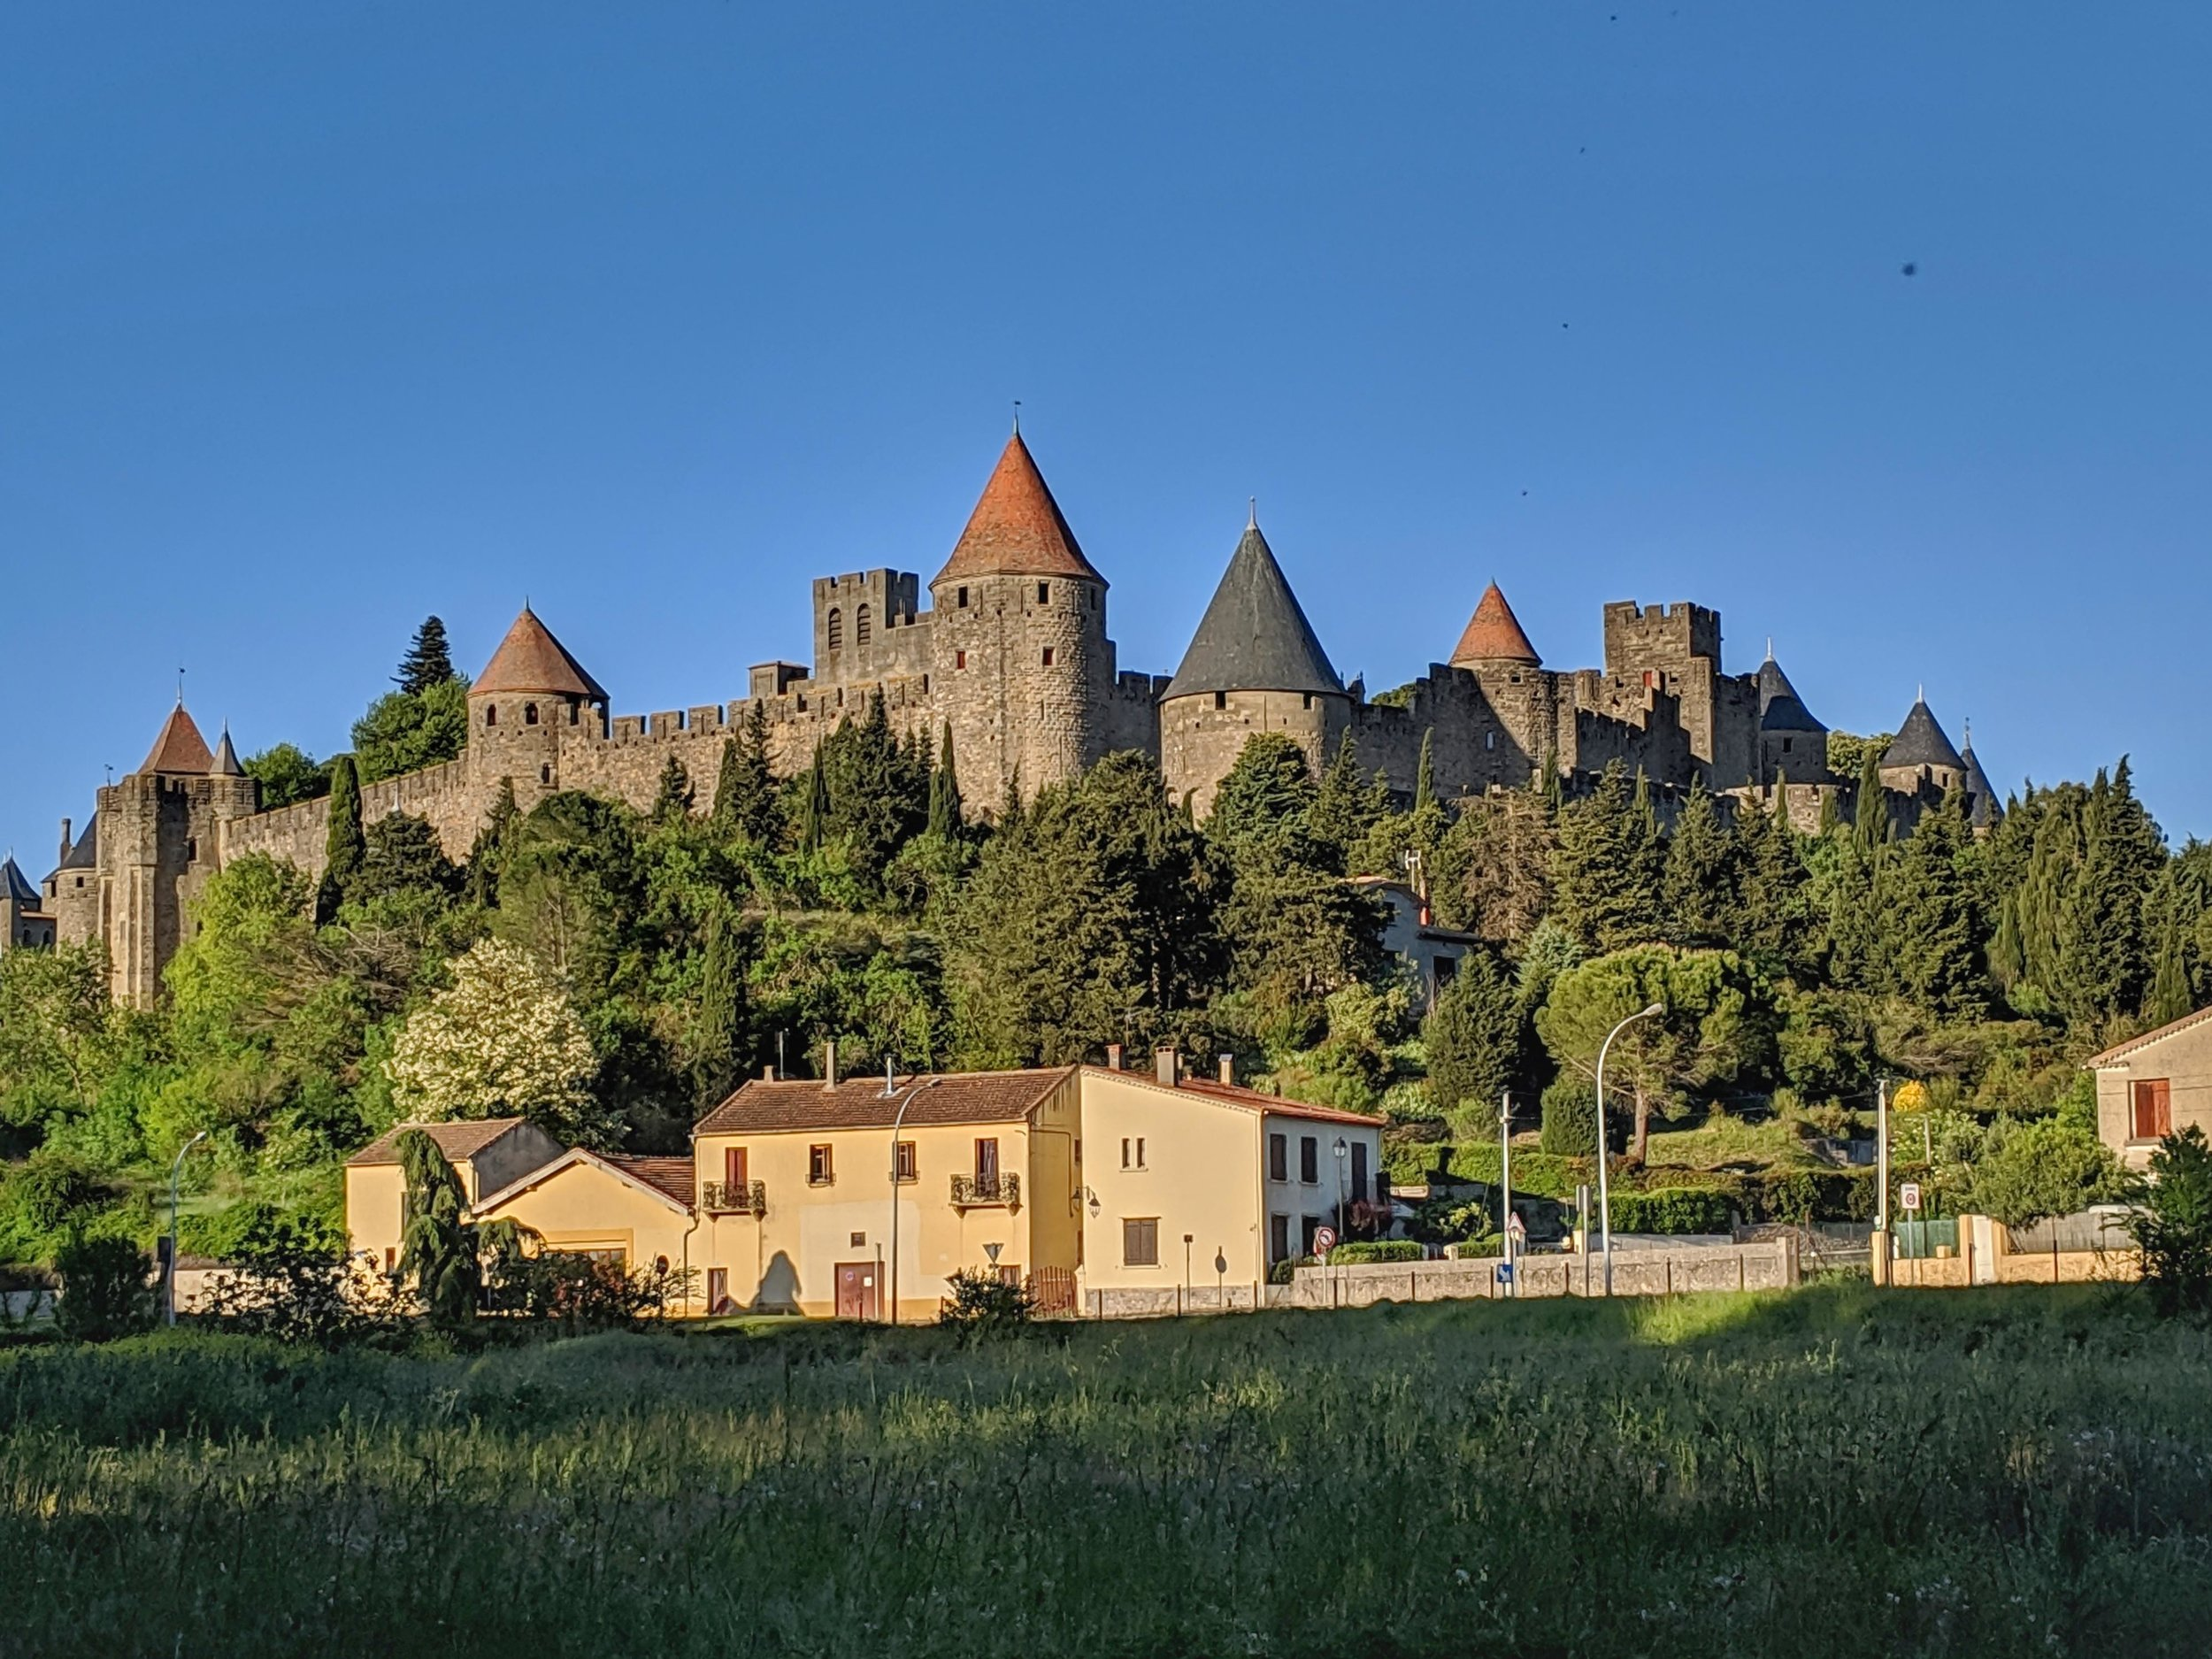 Carcassonne: What an amazing place